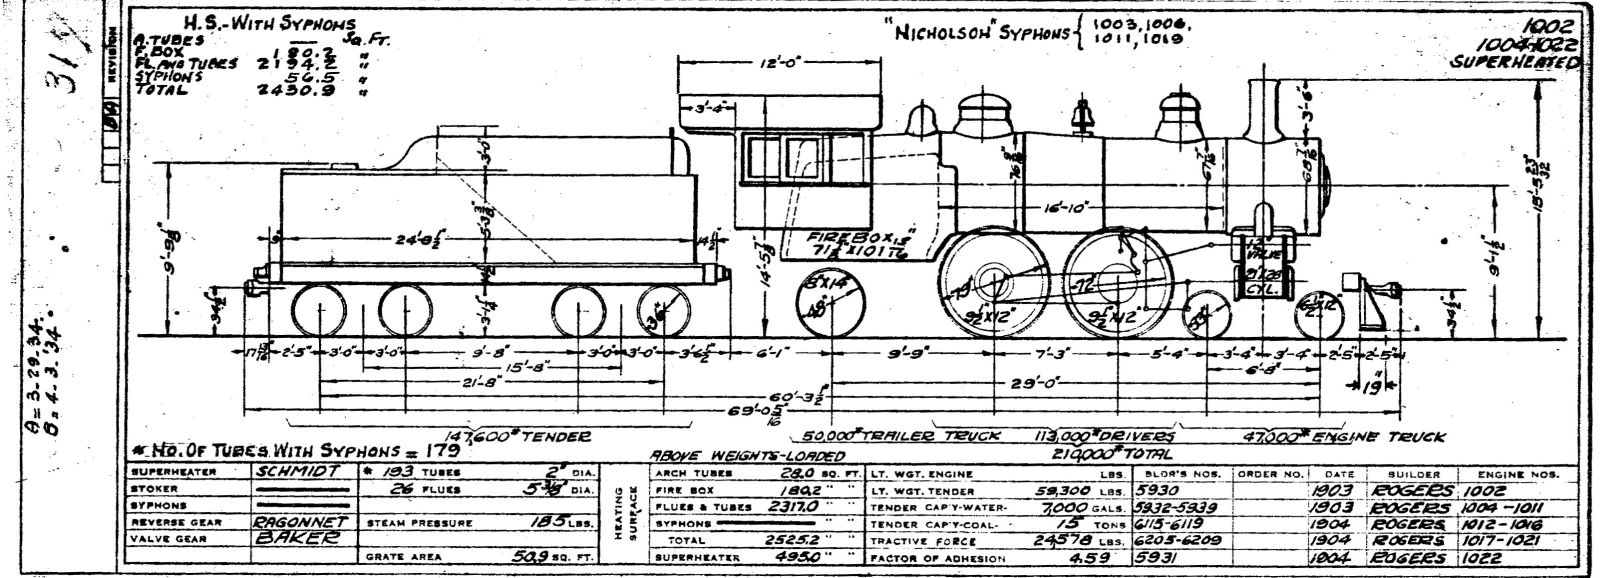 Illinois Central 1937 Locomotive Diagrams Steam Car Engine Diagram 21 Locomotives